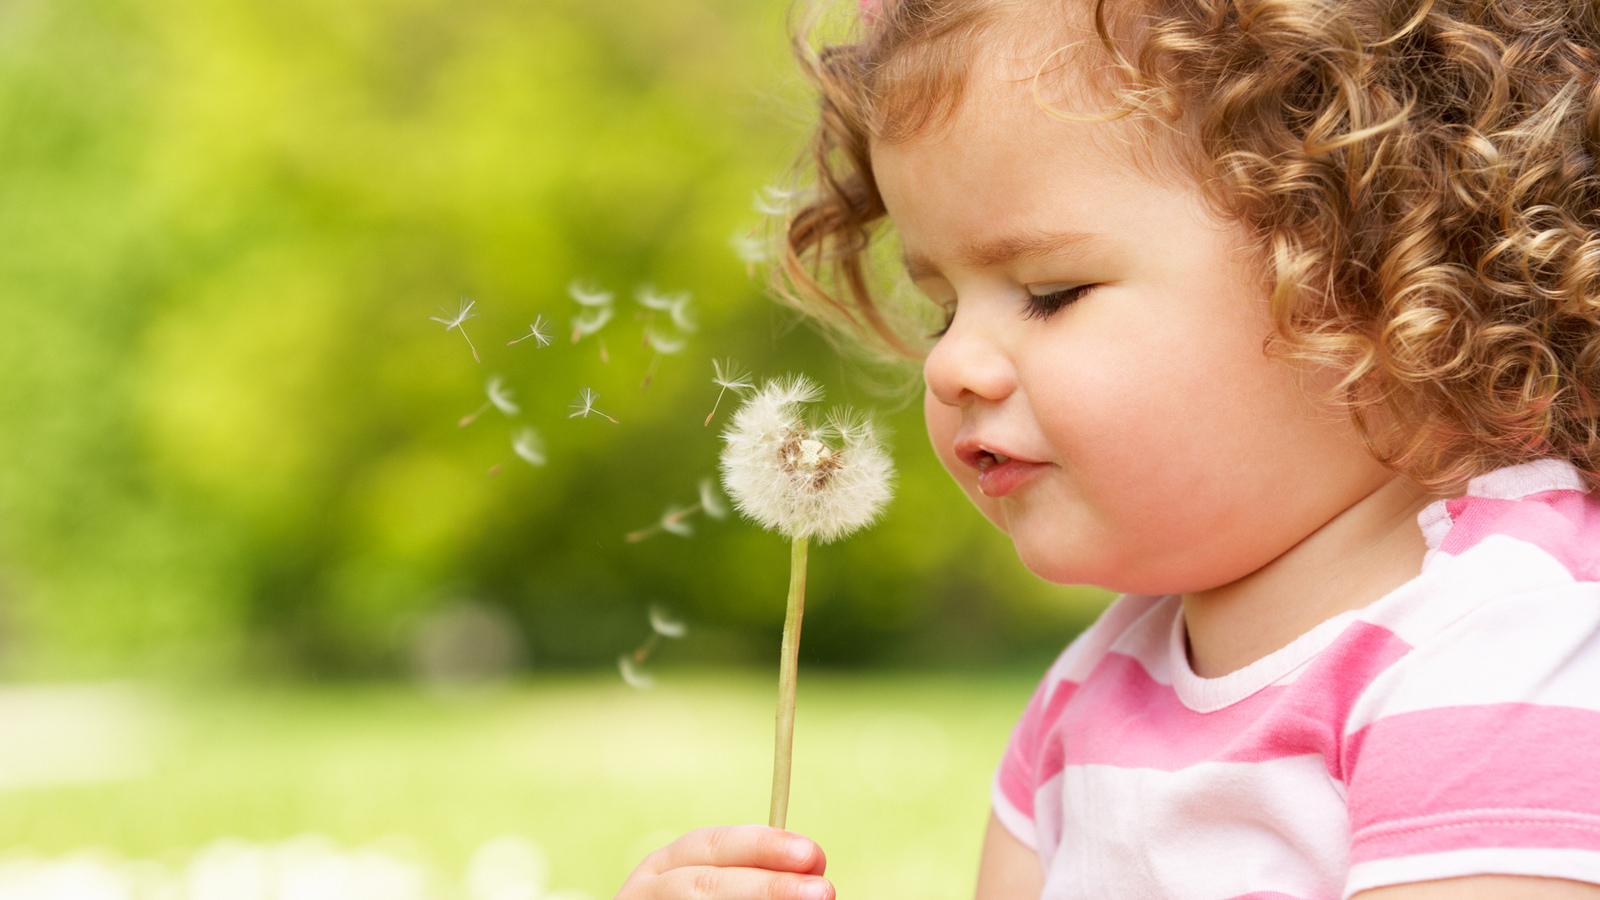 beautiful, child, happiness, mode, cute, little girl, flower, spring, joy, children, flower